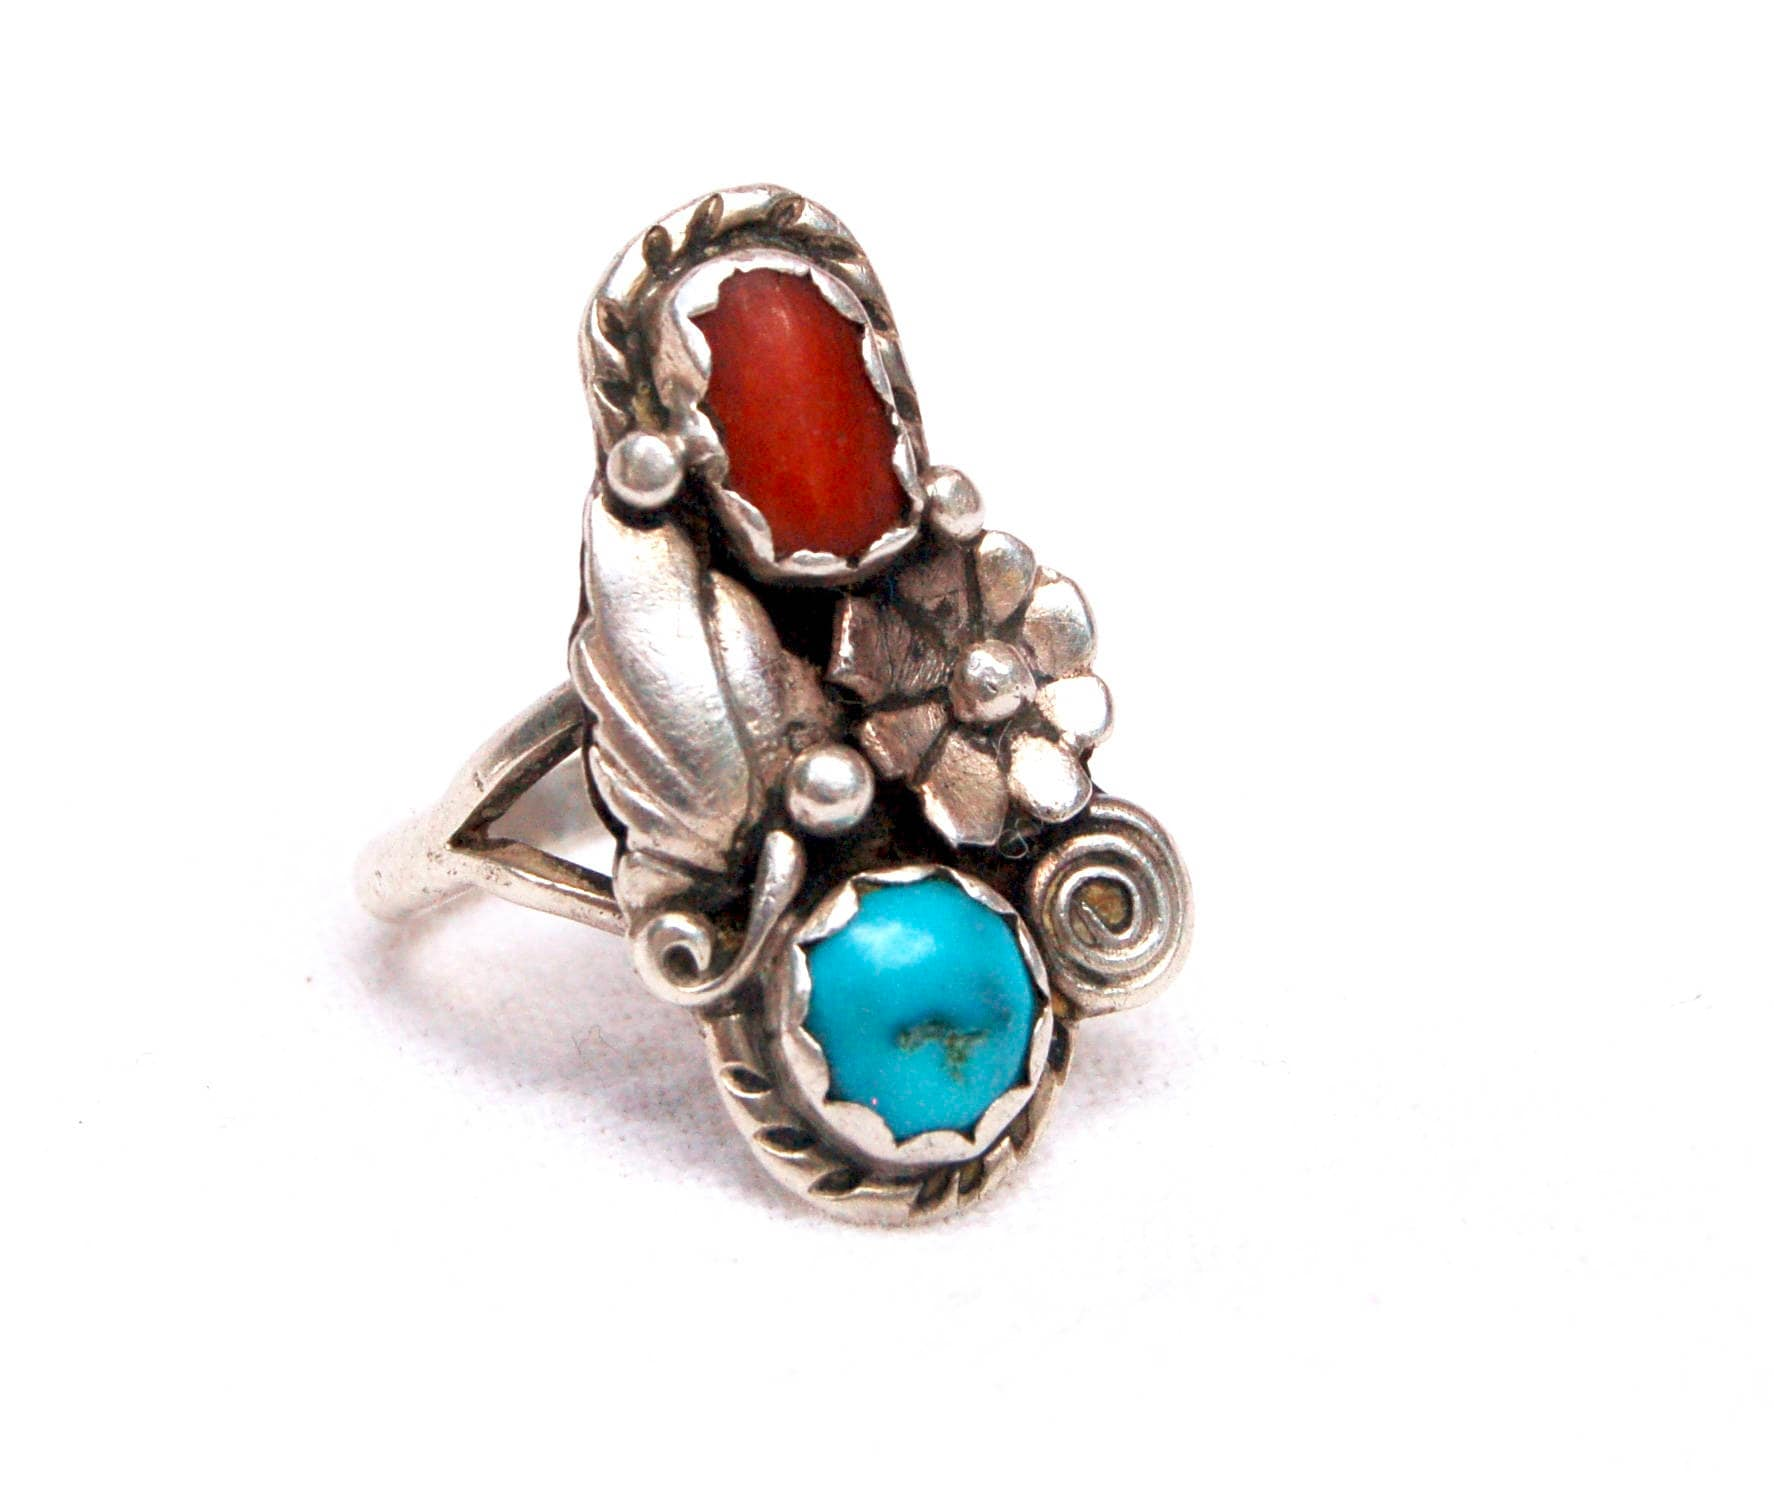 vintage fullxfull jewellery american ring southwest native silver il jewelry sxup gallery listing photo turquoise